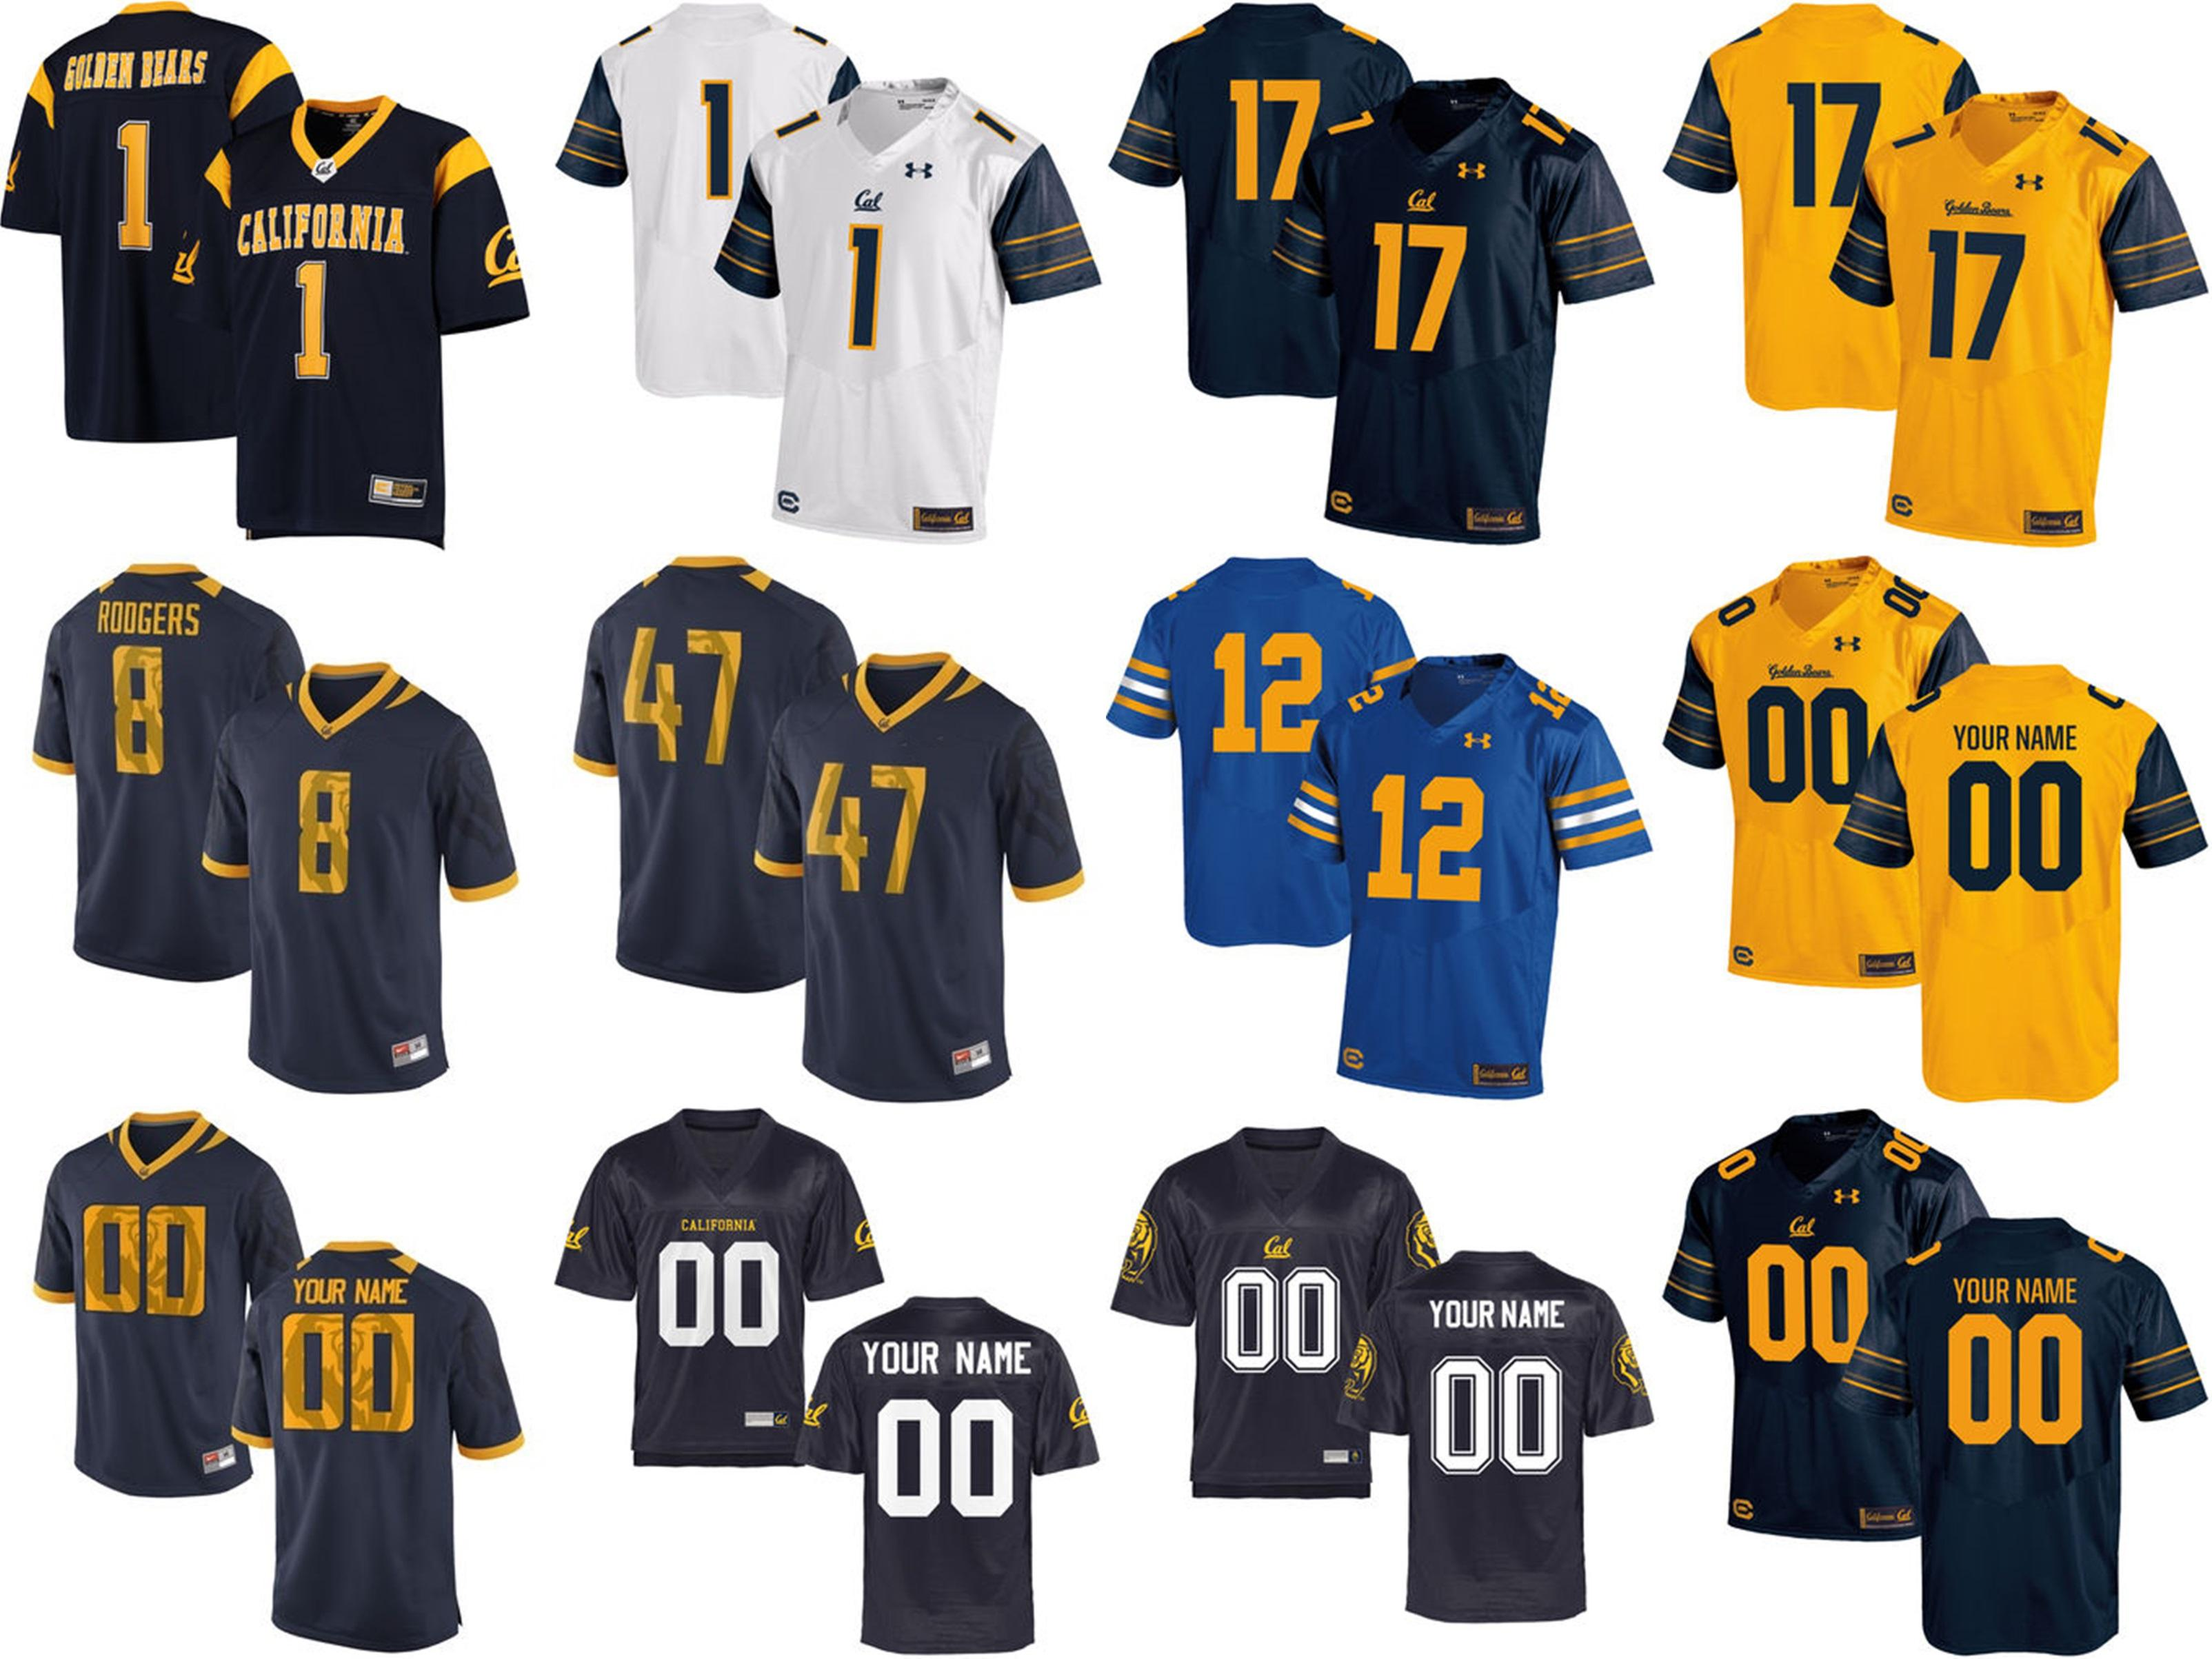 Customize NCAA Cal Bears Mens Womens Kids Jersey Custom Any Name Any No.  100% Stitched S-6XL College Football Jerseys Hot Sale Best Quality Jerseys  Cal ... 10b3bd6af